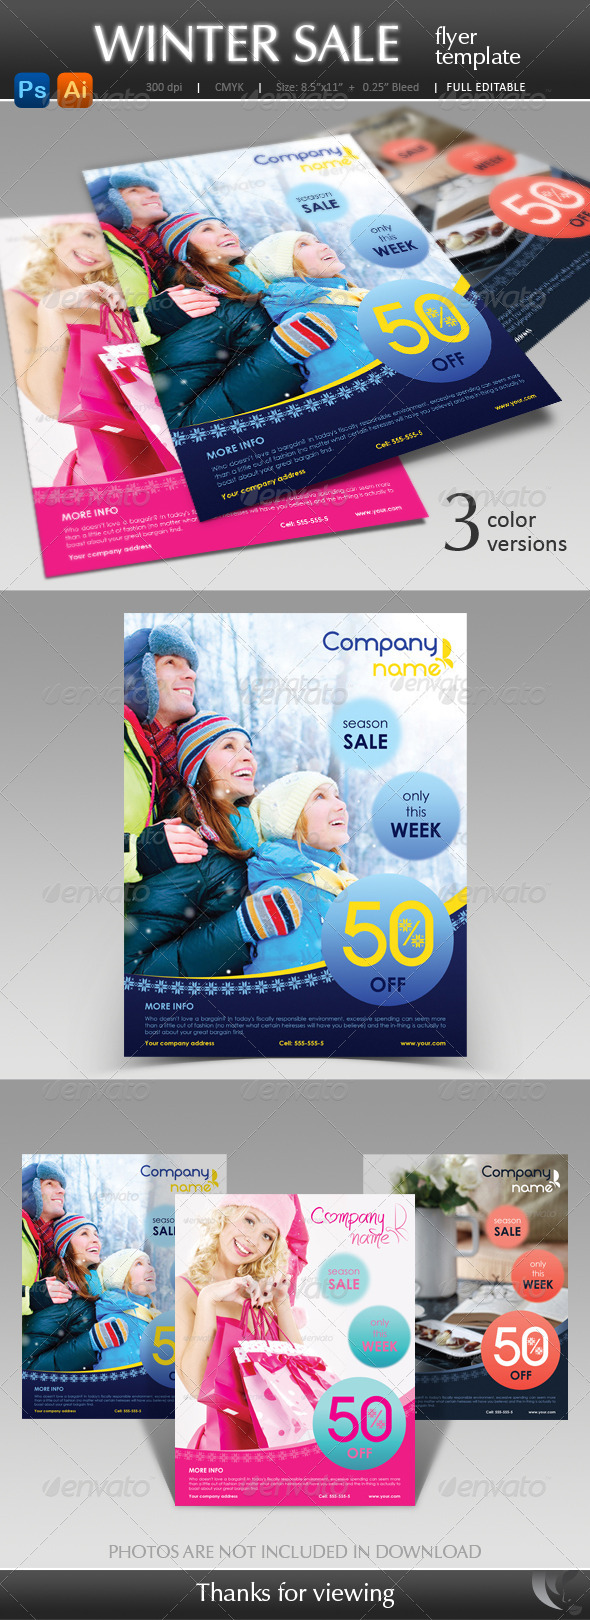 Winter Sale Flyer Template - Corporate Flyers